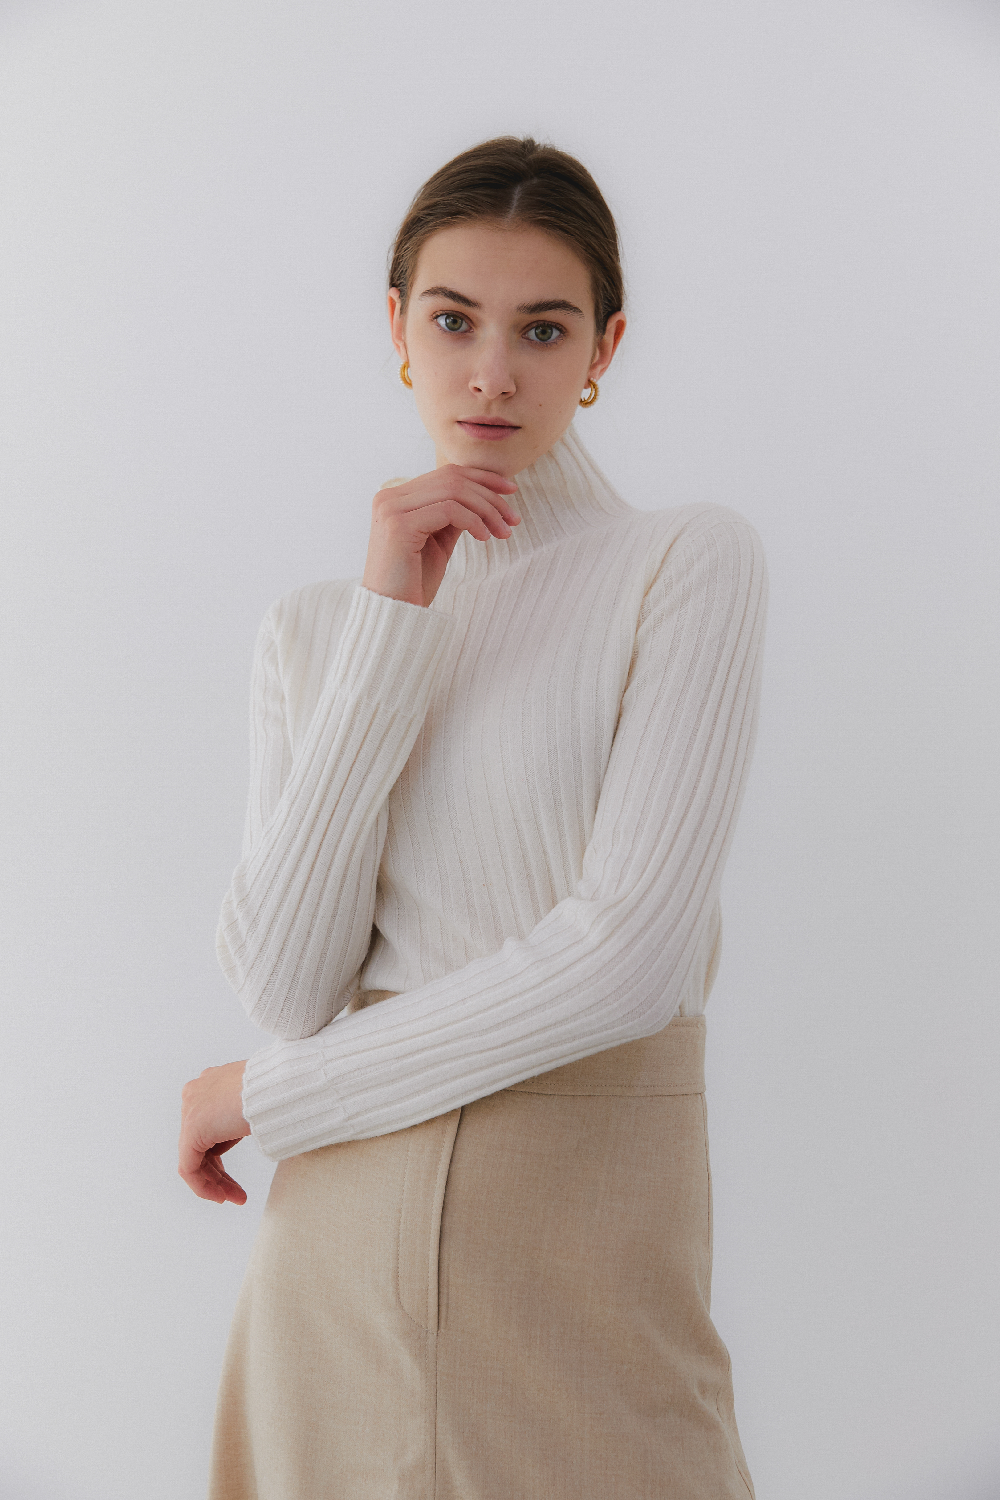 프리미엄 캐시미어 100 골지 스웨터 [Pure cashmere100 ribbed soft-touch sweater by whole-garment knitting - Pearl Ivory]